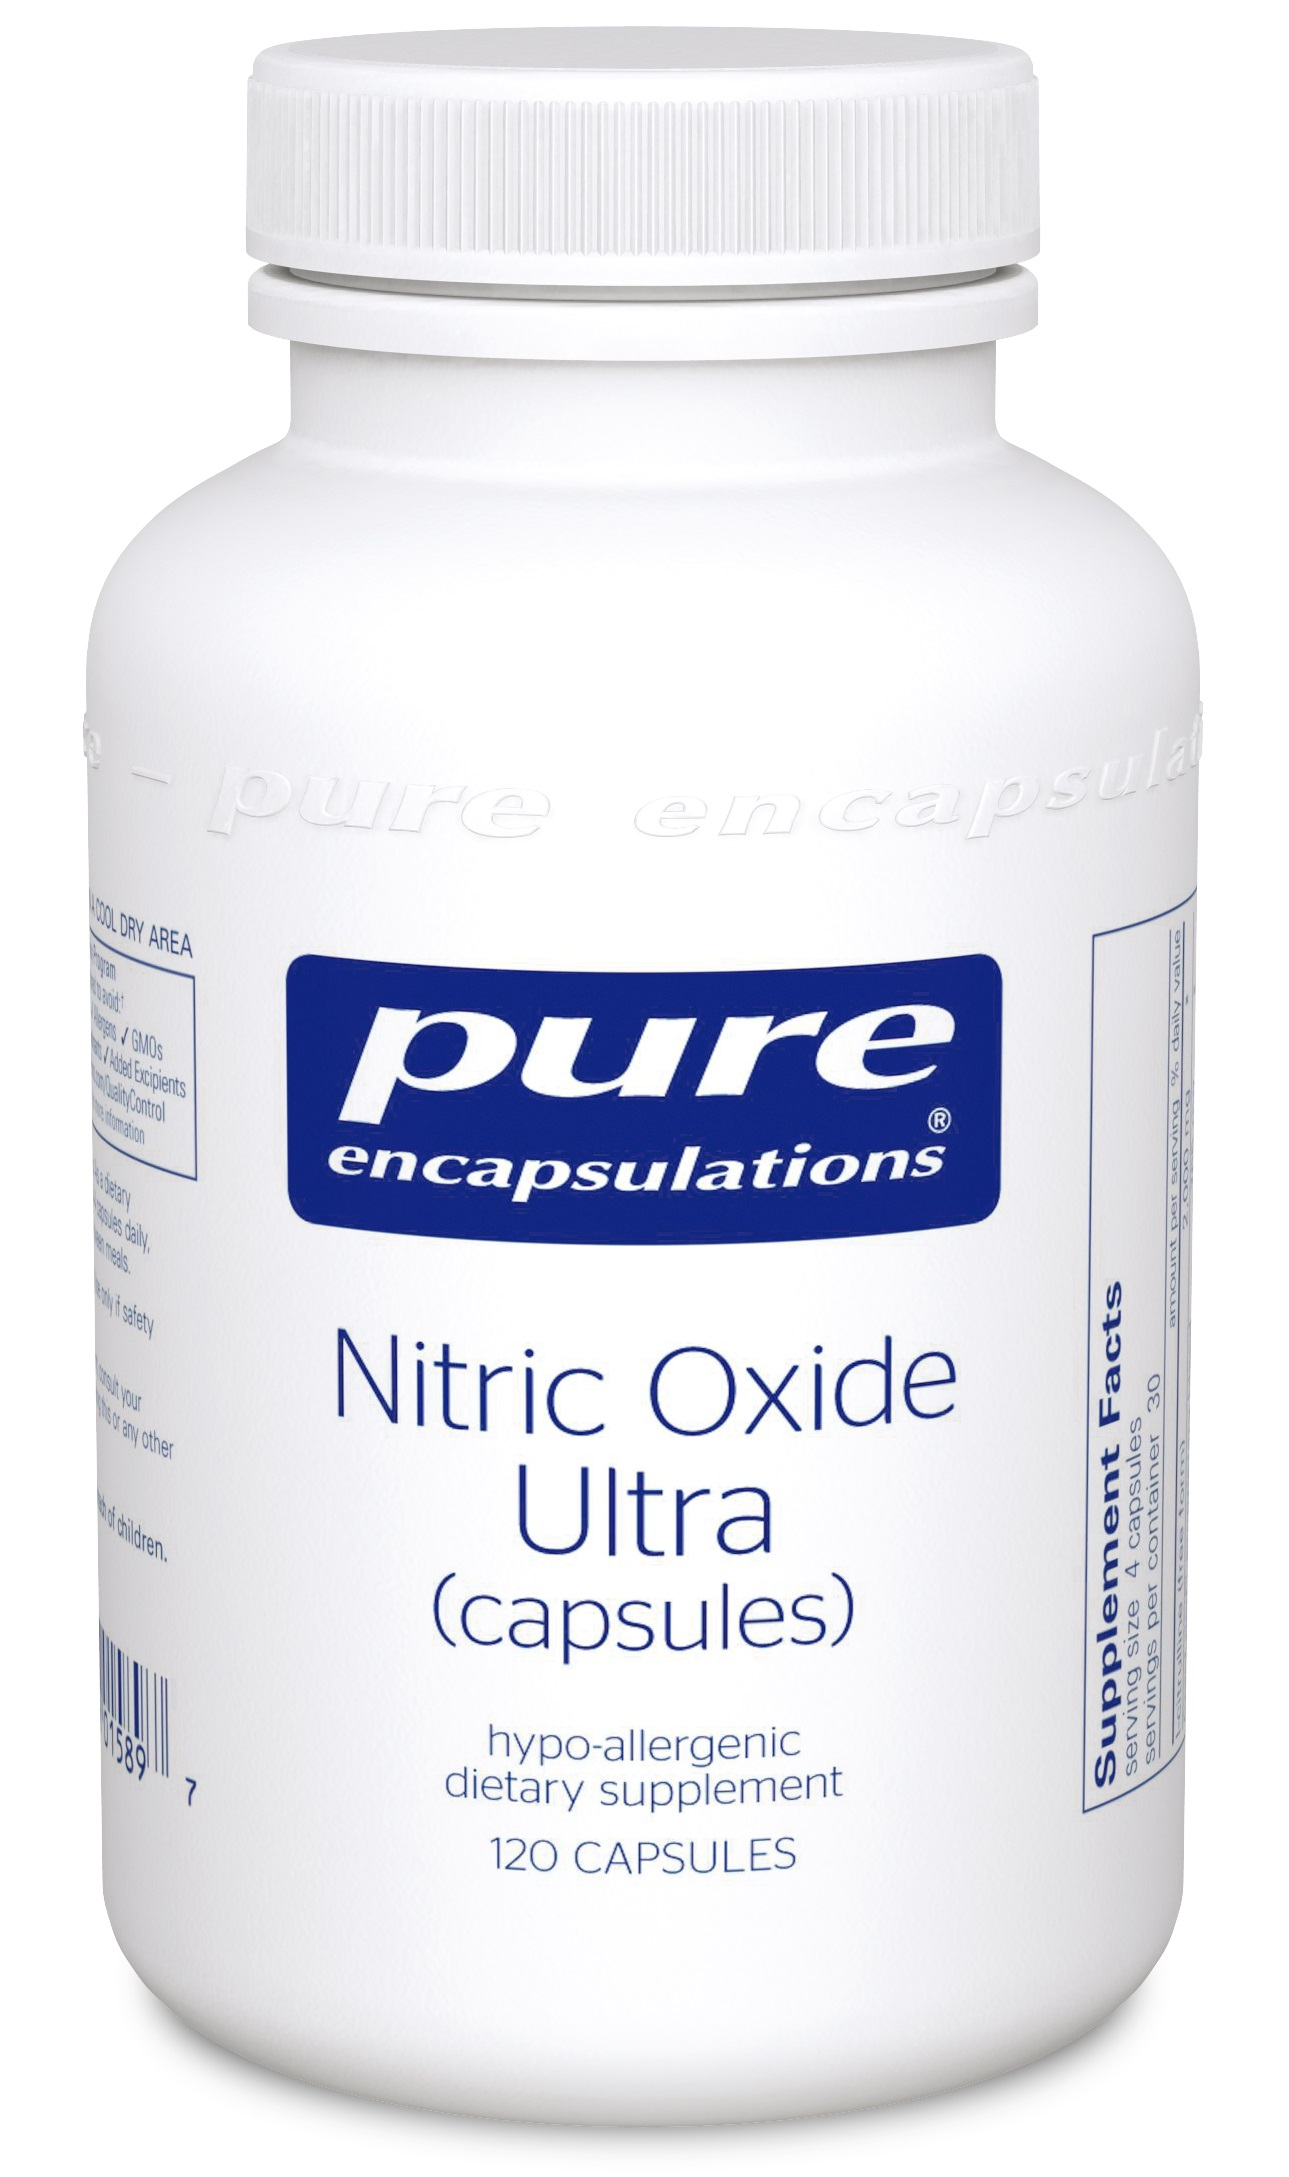 Pure Encapsulations Nitric Oxide Ultra (capsules) 120's